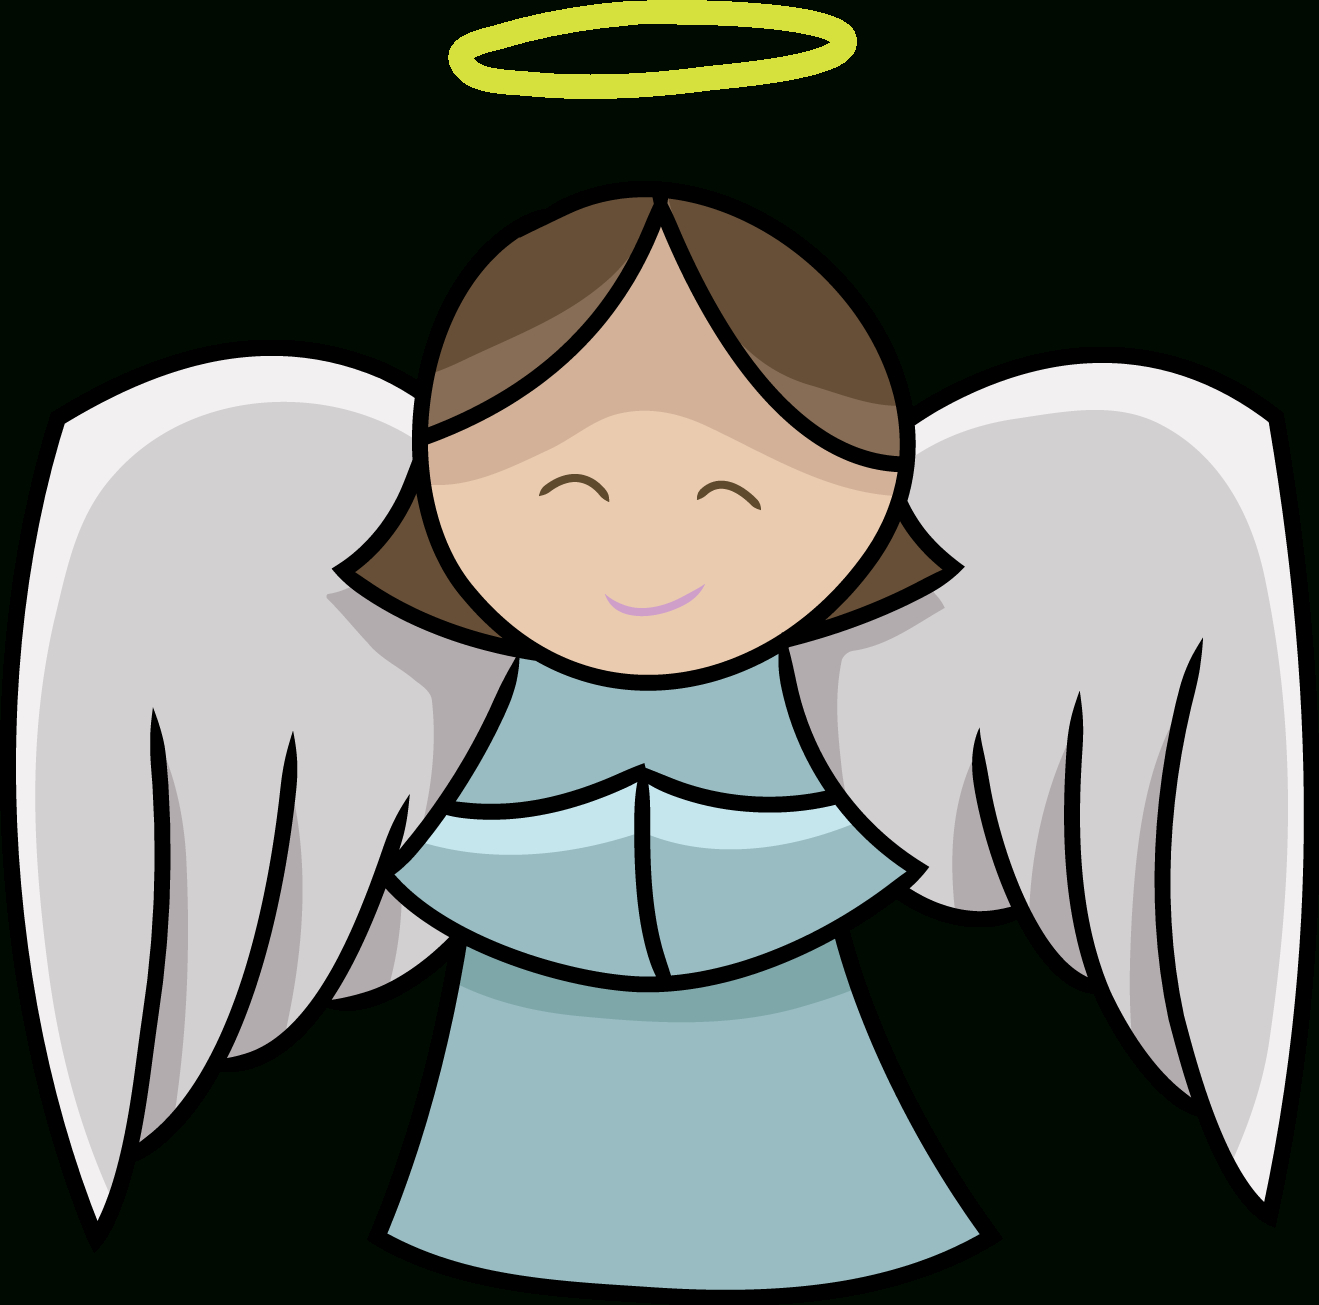 Angel Clip Art Free Printable | Clipart Panda - Free Clipart Images - Free Printable Pictures Of Angels